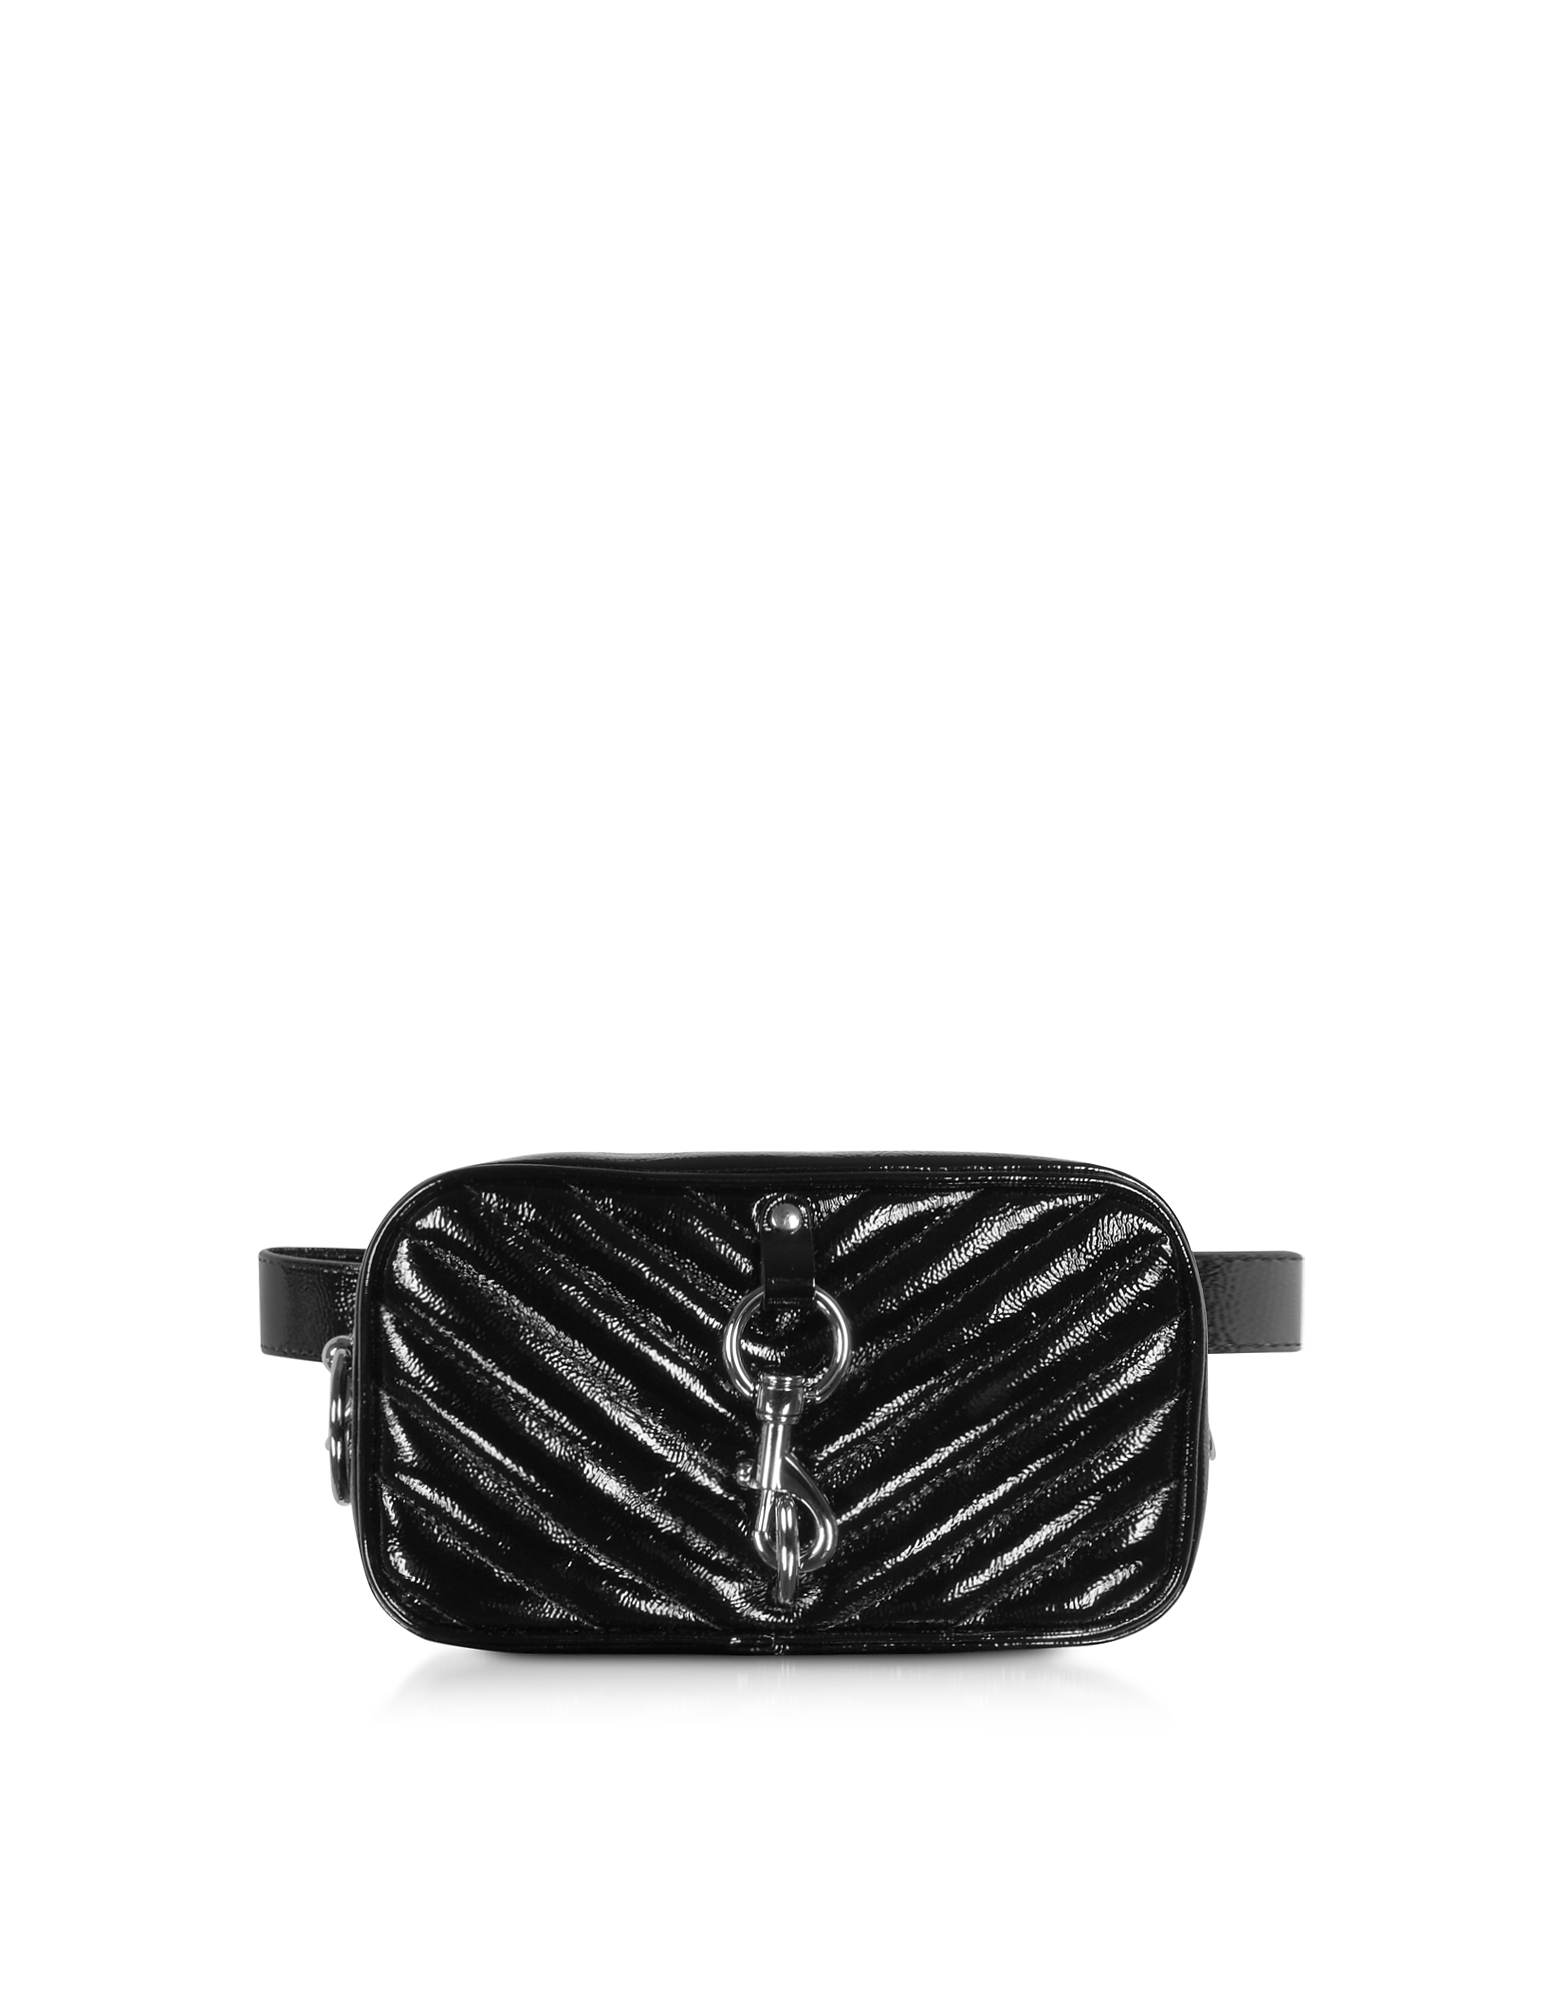 Rebecca Minkoff Designer Handbags, Naplack Camera Belt Bag